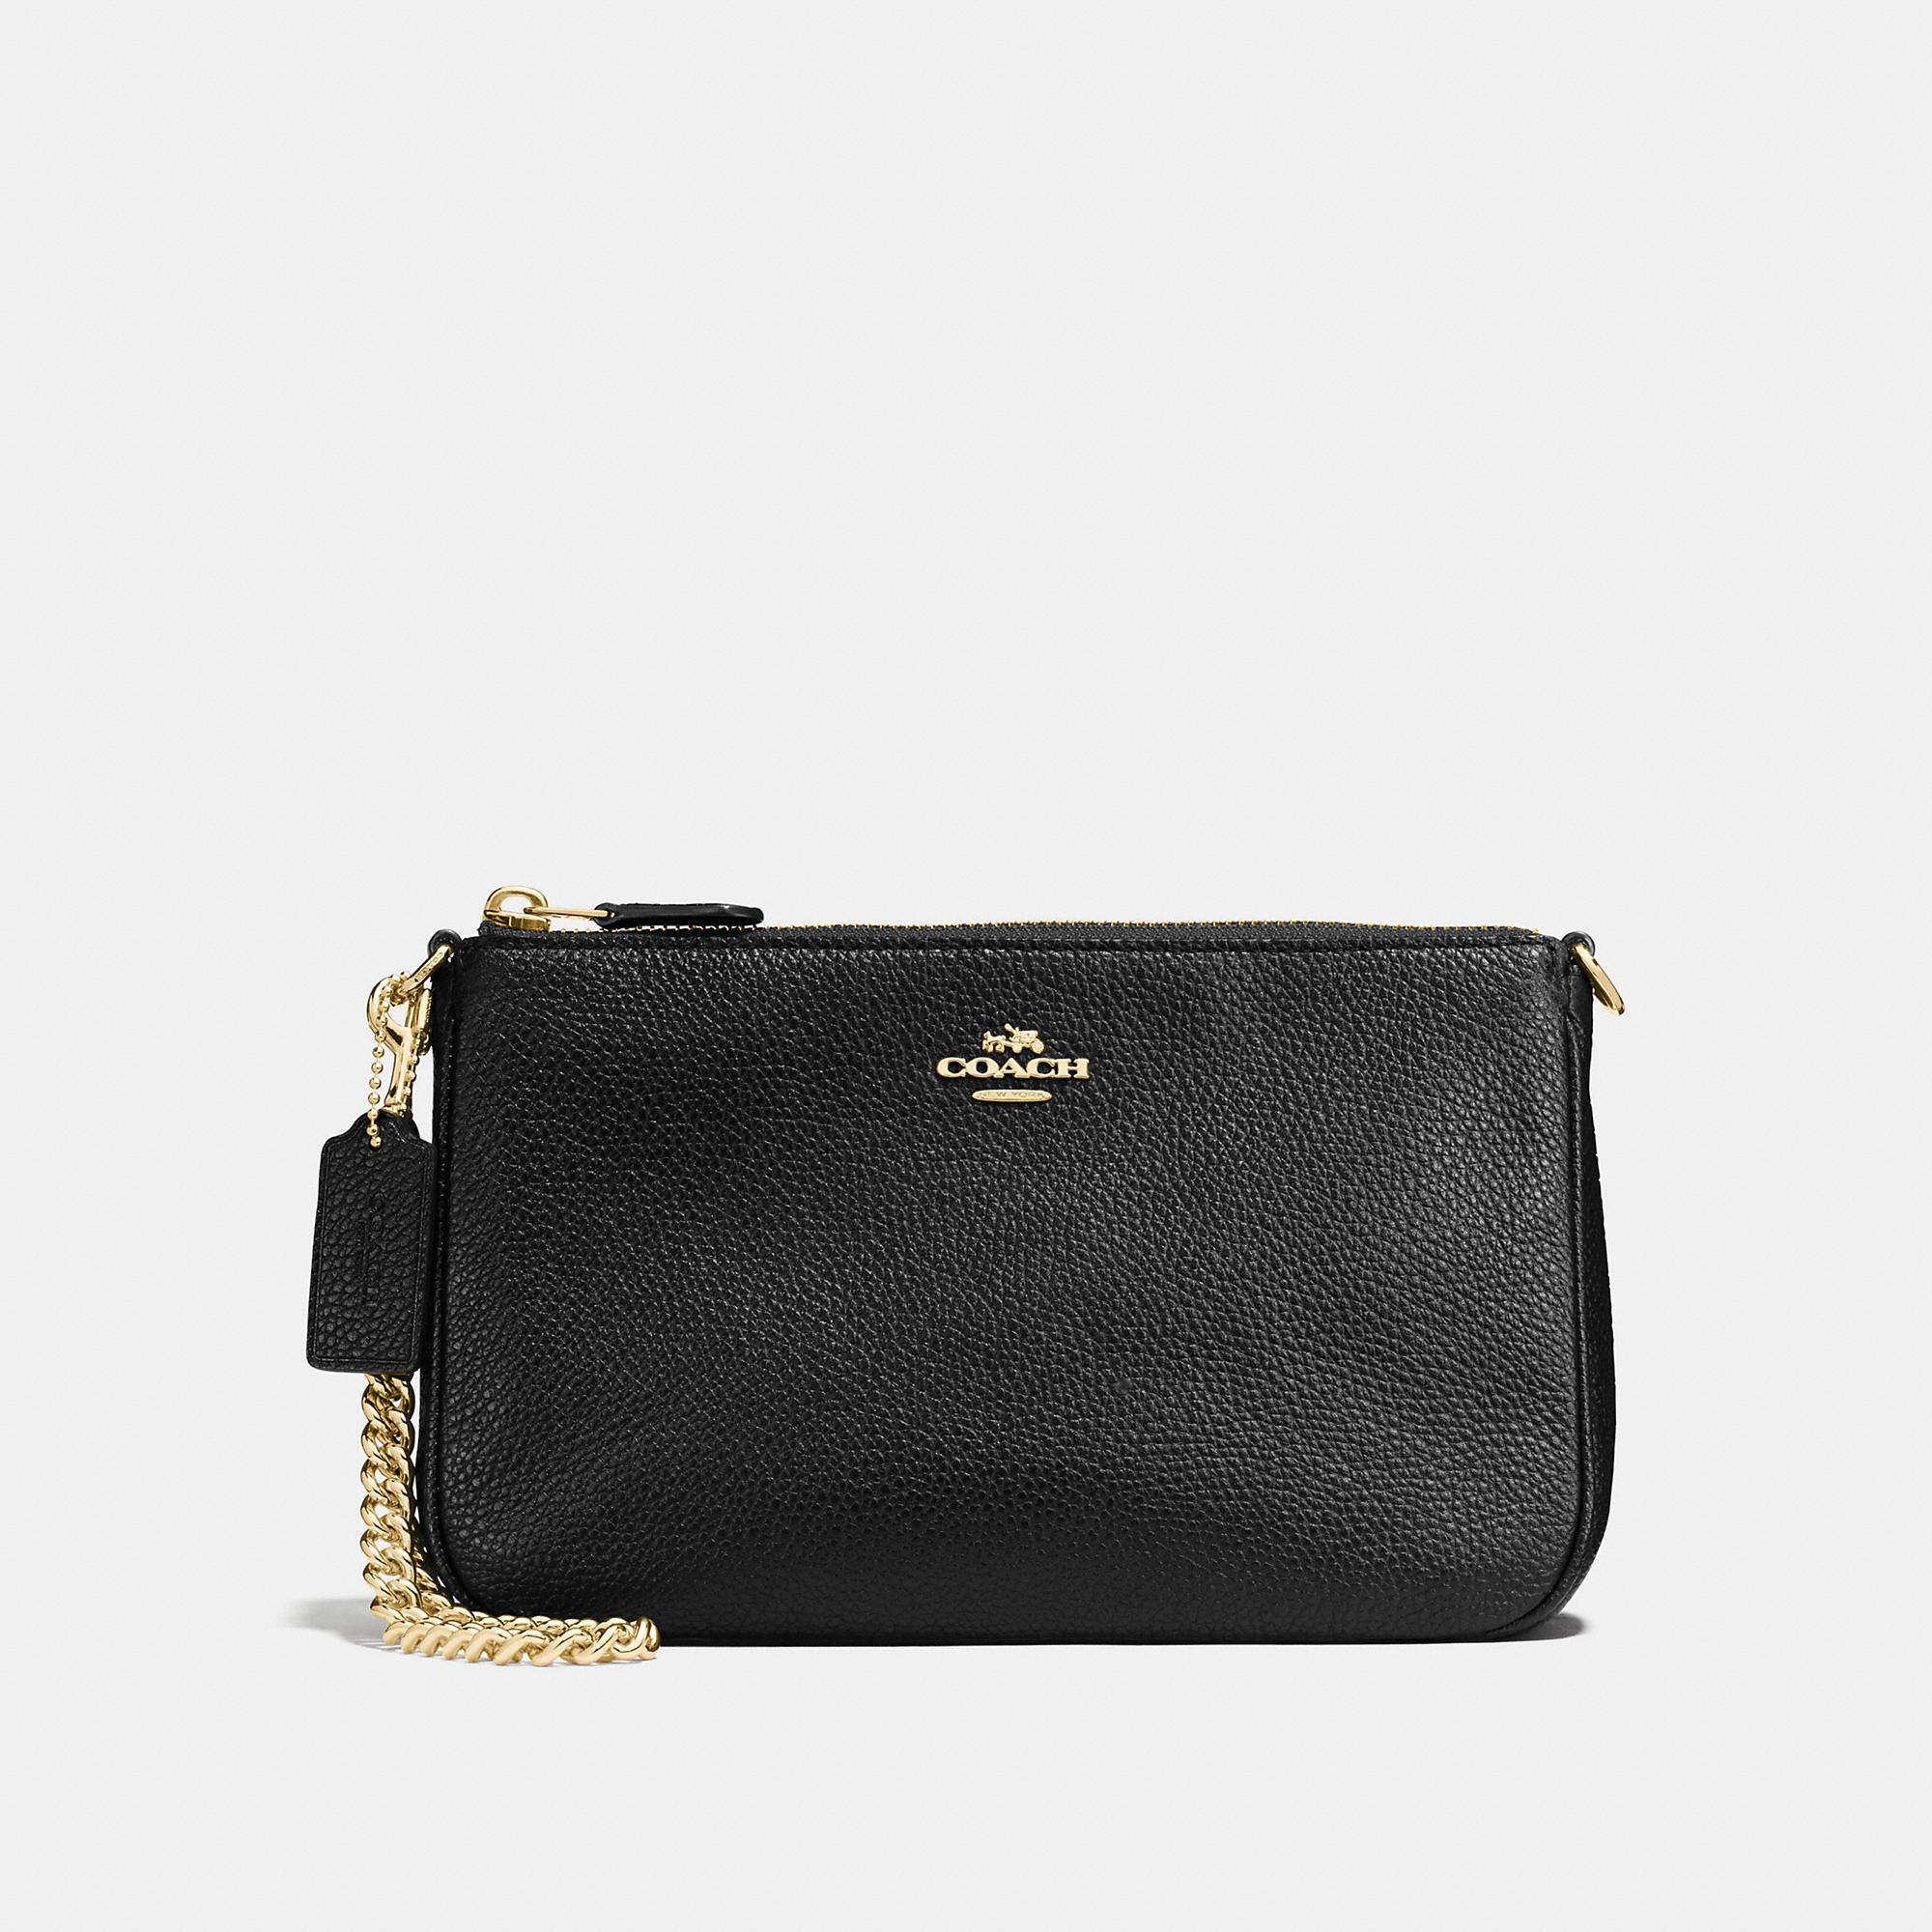 Coach Nolita Wristlet 22 In Black/Light Gold